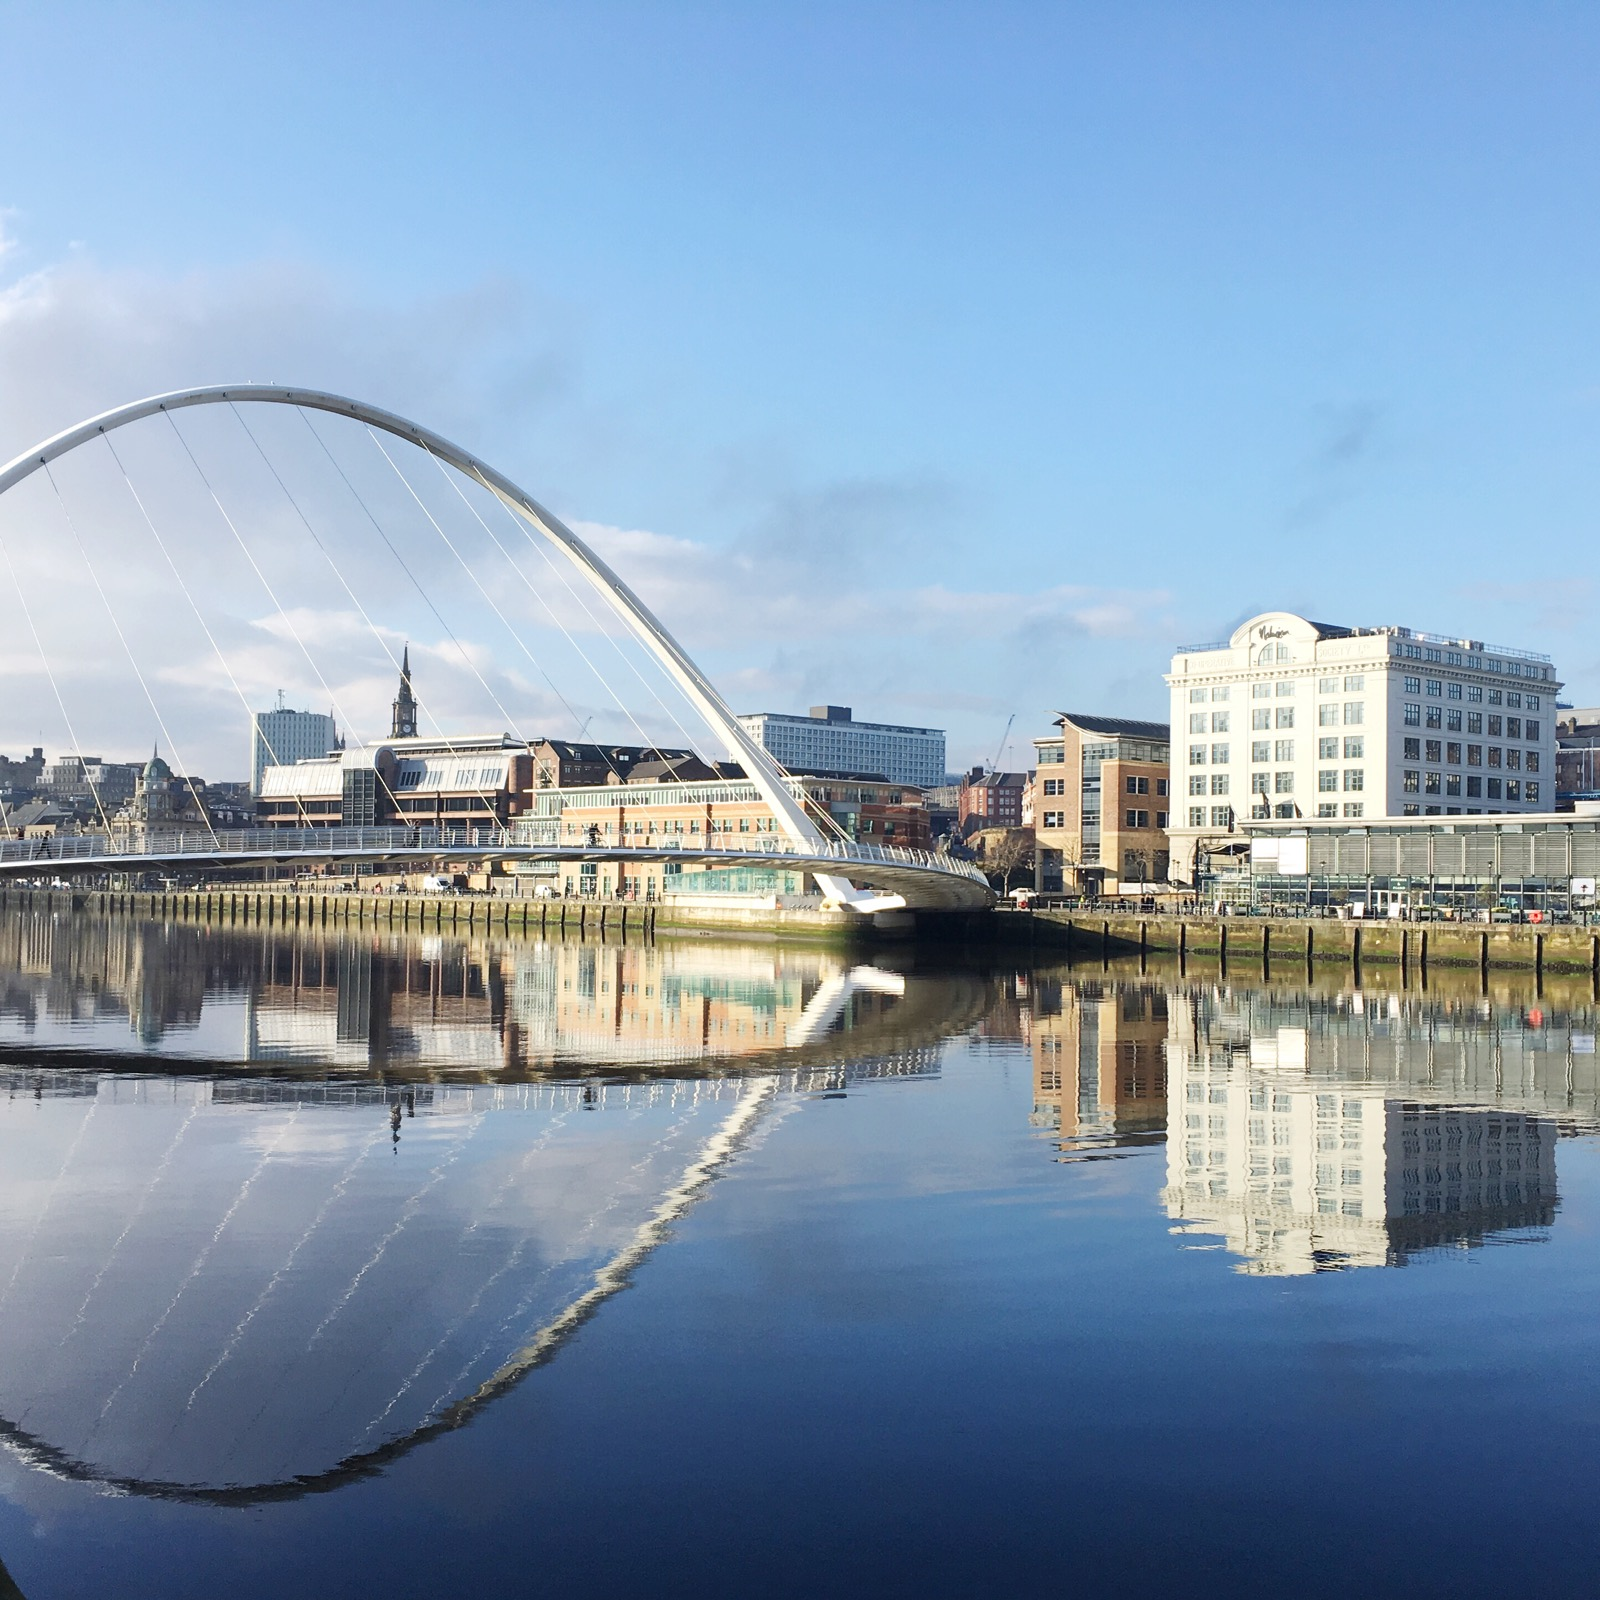 8 Things I've Learned Living in Newcastle